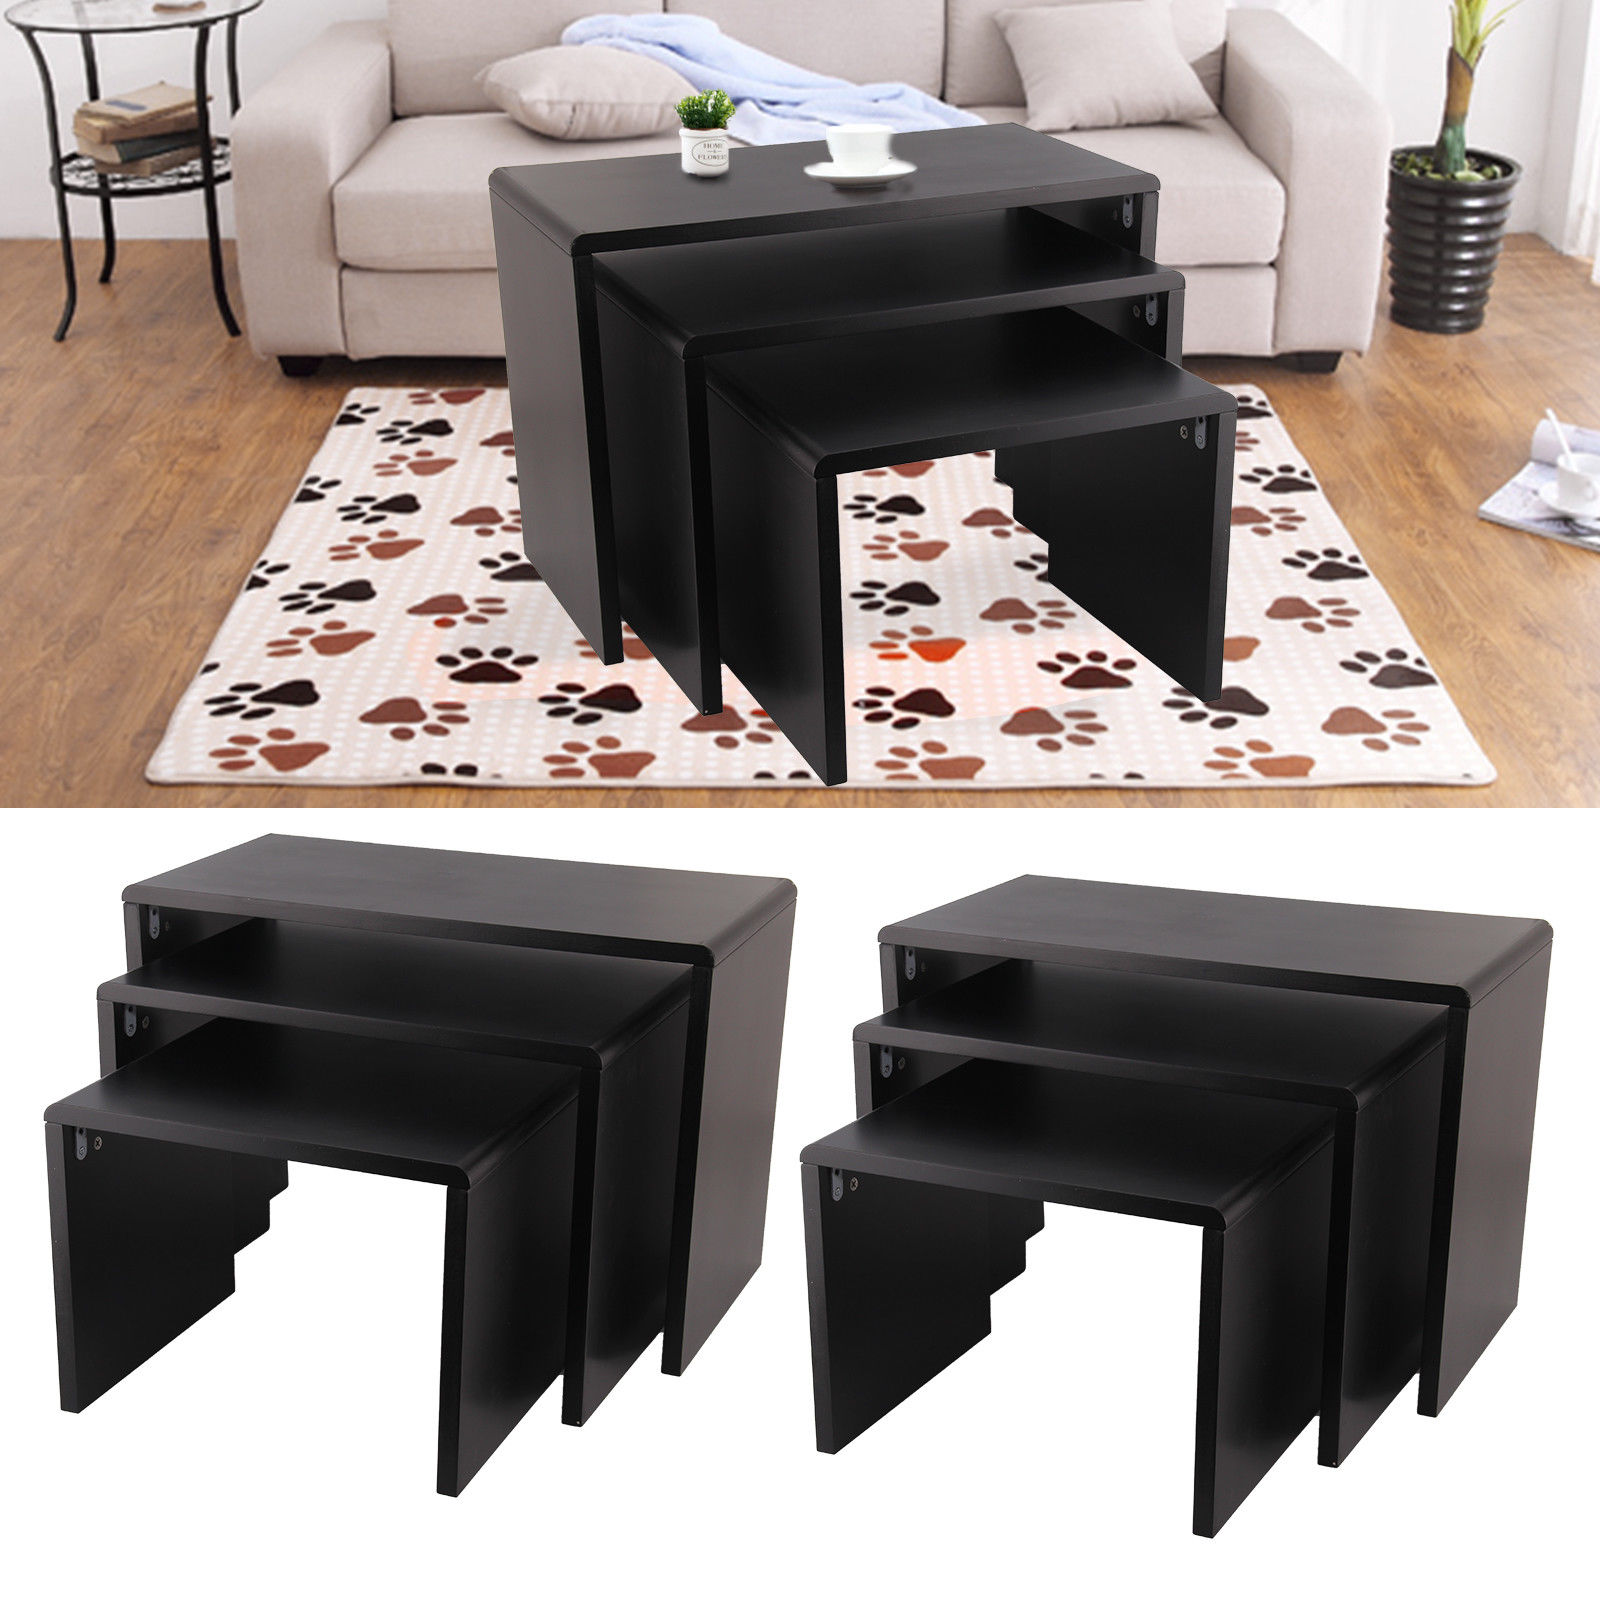 Modern Nest Of 3 Desk Side End Coffee Bar Living Room Furniture Black Simple Small-family Mesas De Centro Log Tea Table